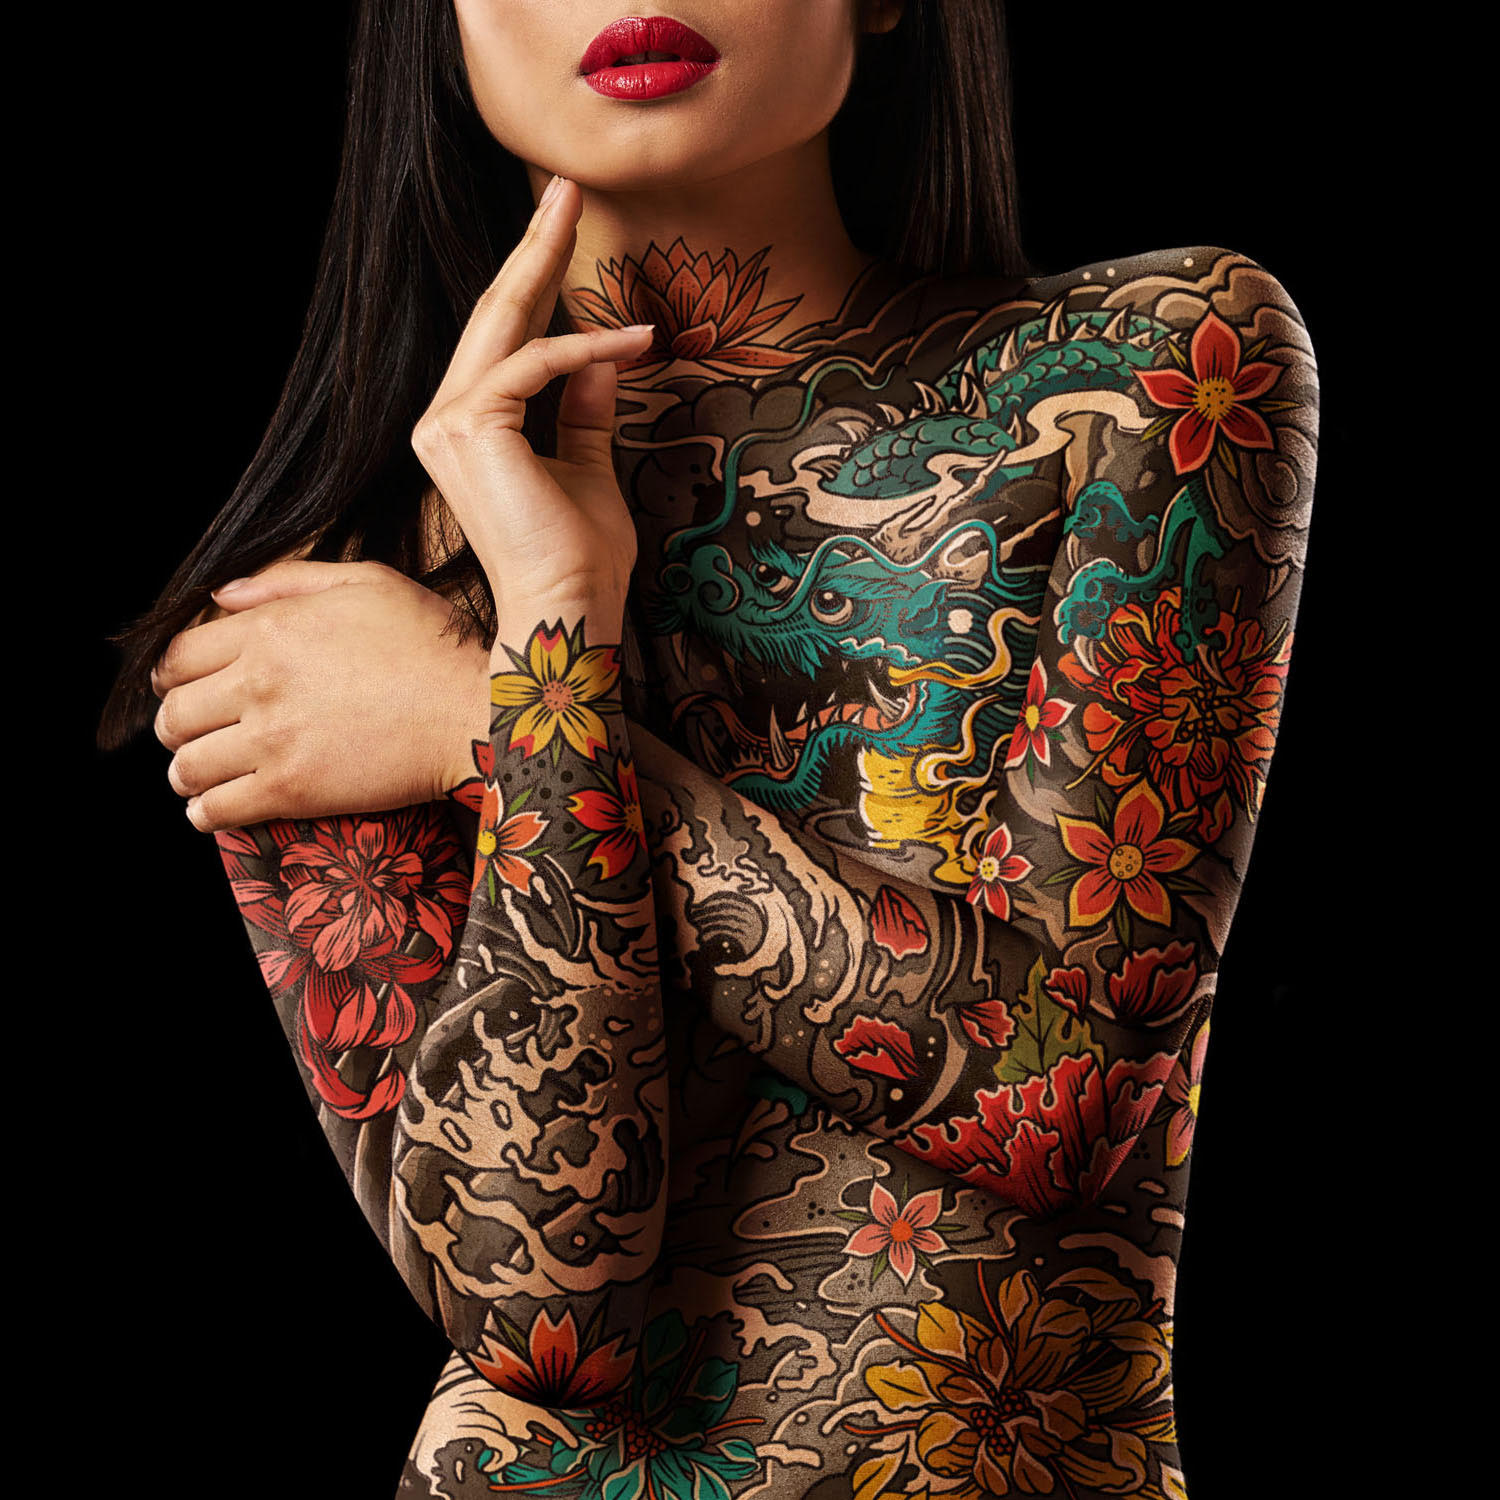 Joe Giacomet tattoo girl thinking